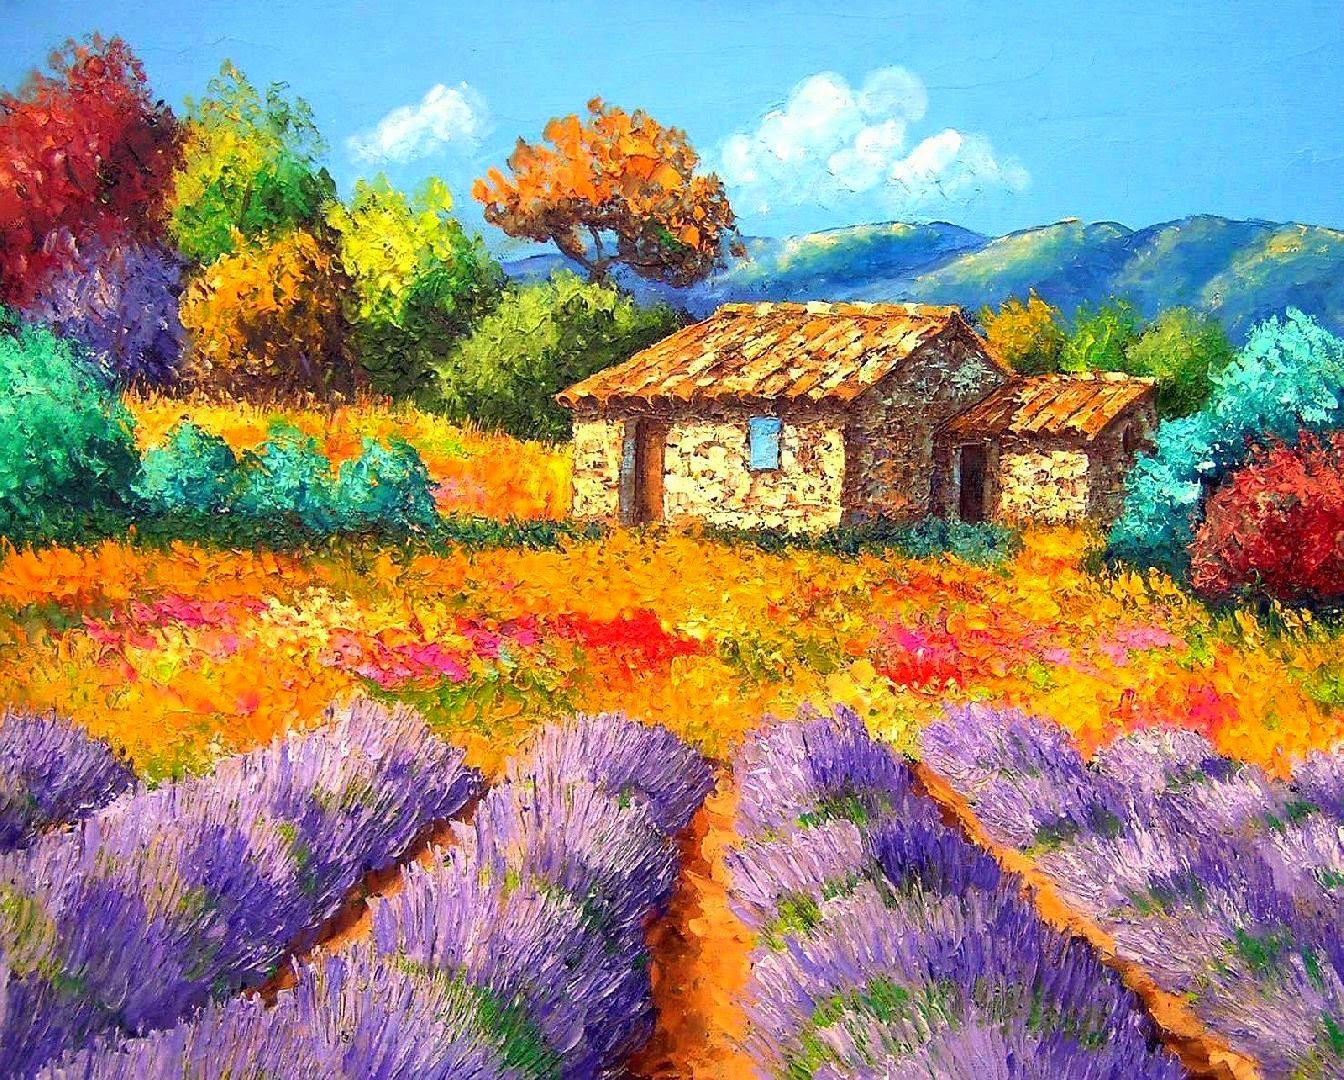 art painting wallpapers Wallpapers   Free art painting wallpapers